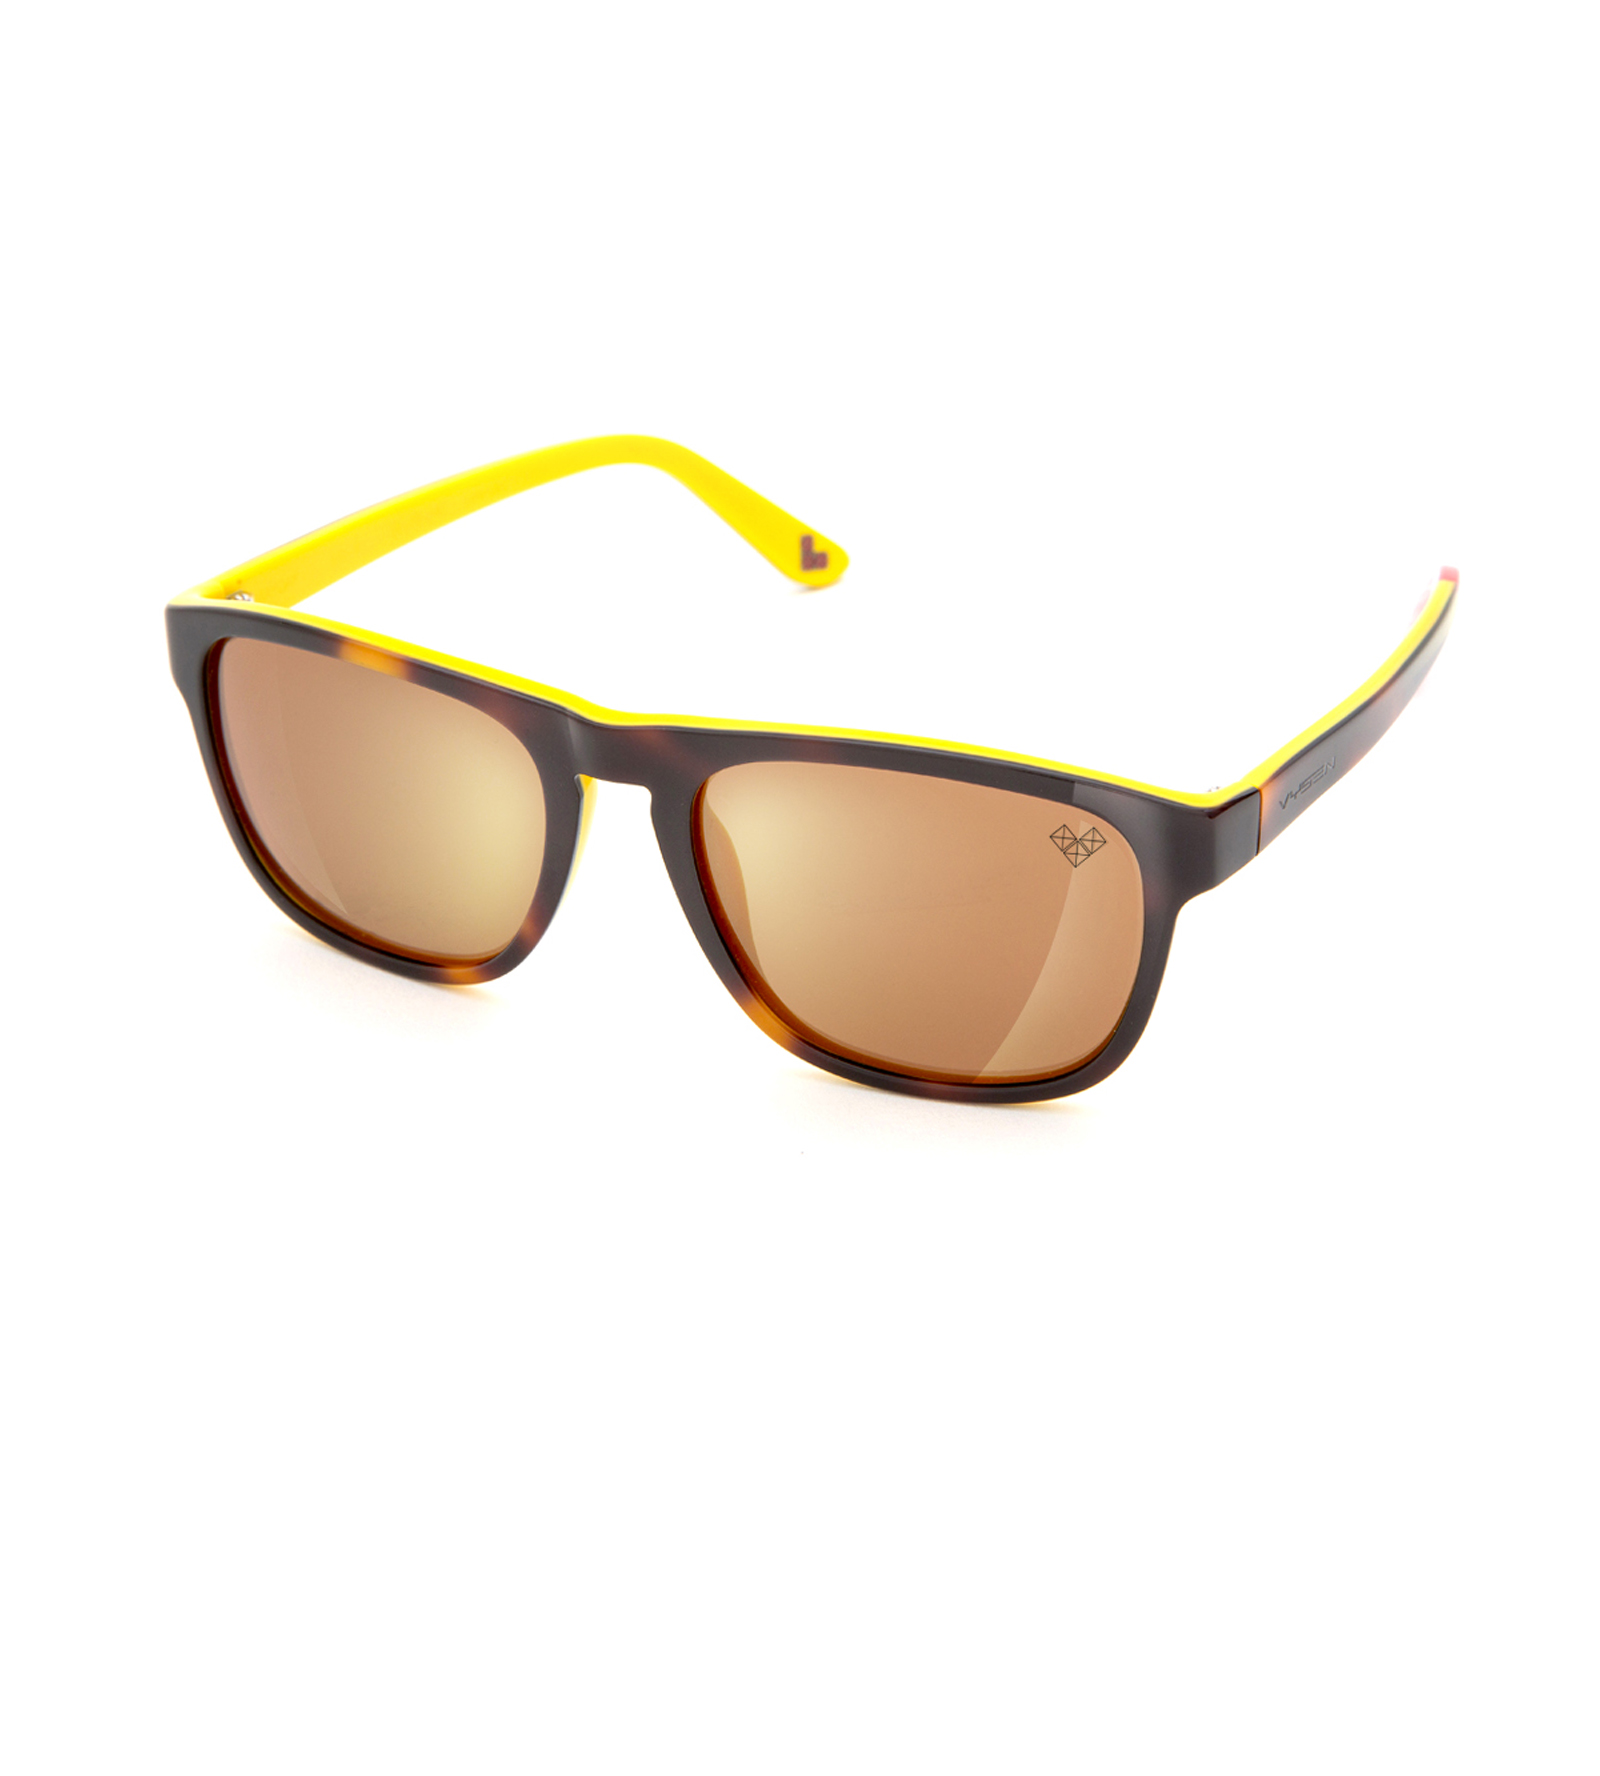 MAYDAY-Md4BR-P with Brown Polarized Lenses